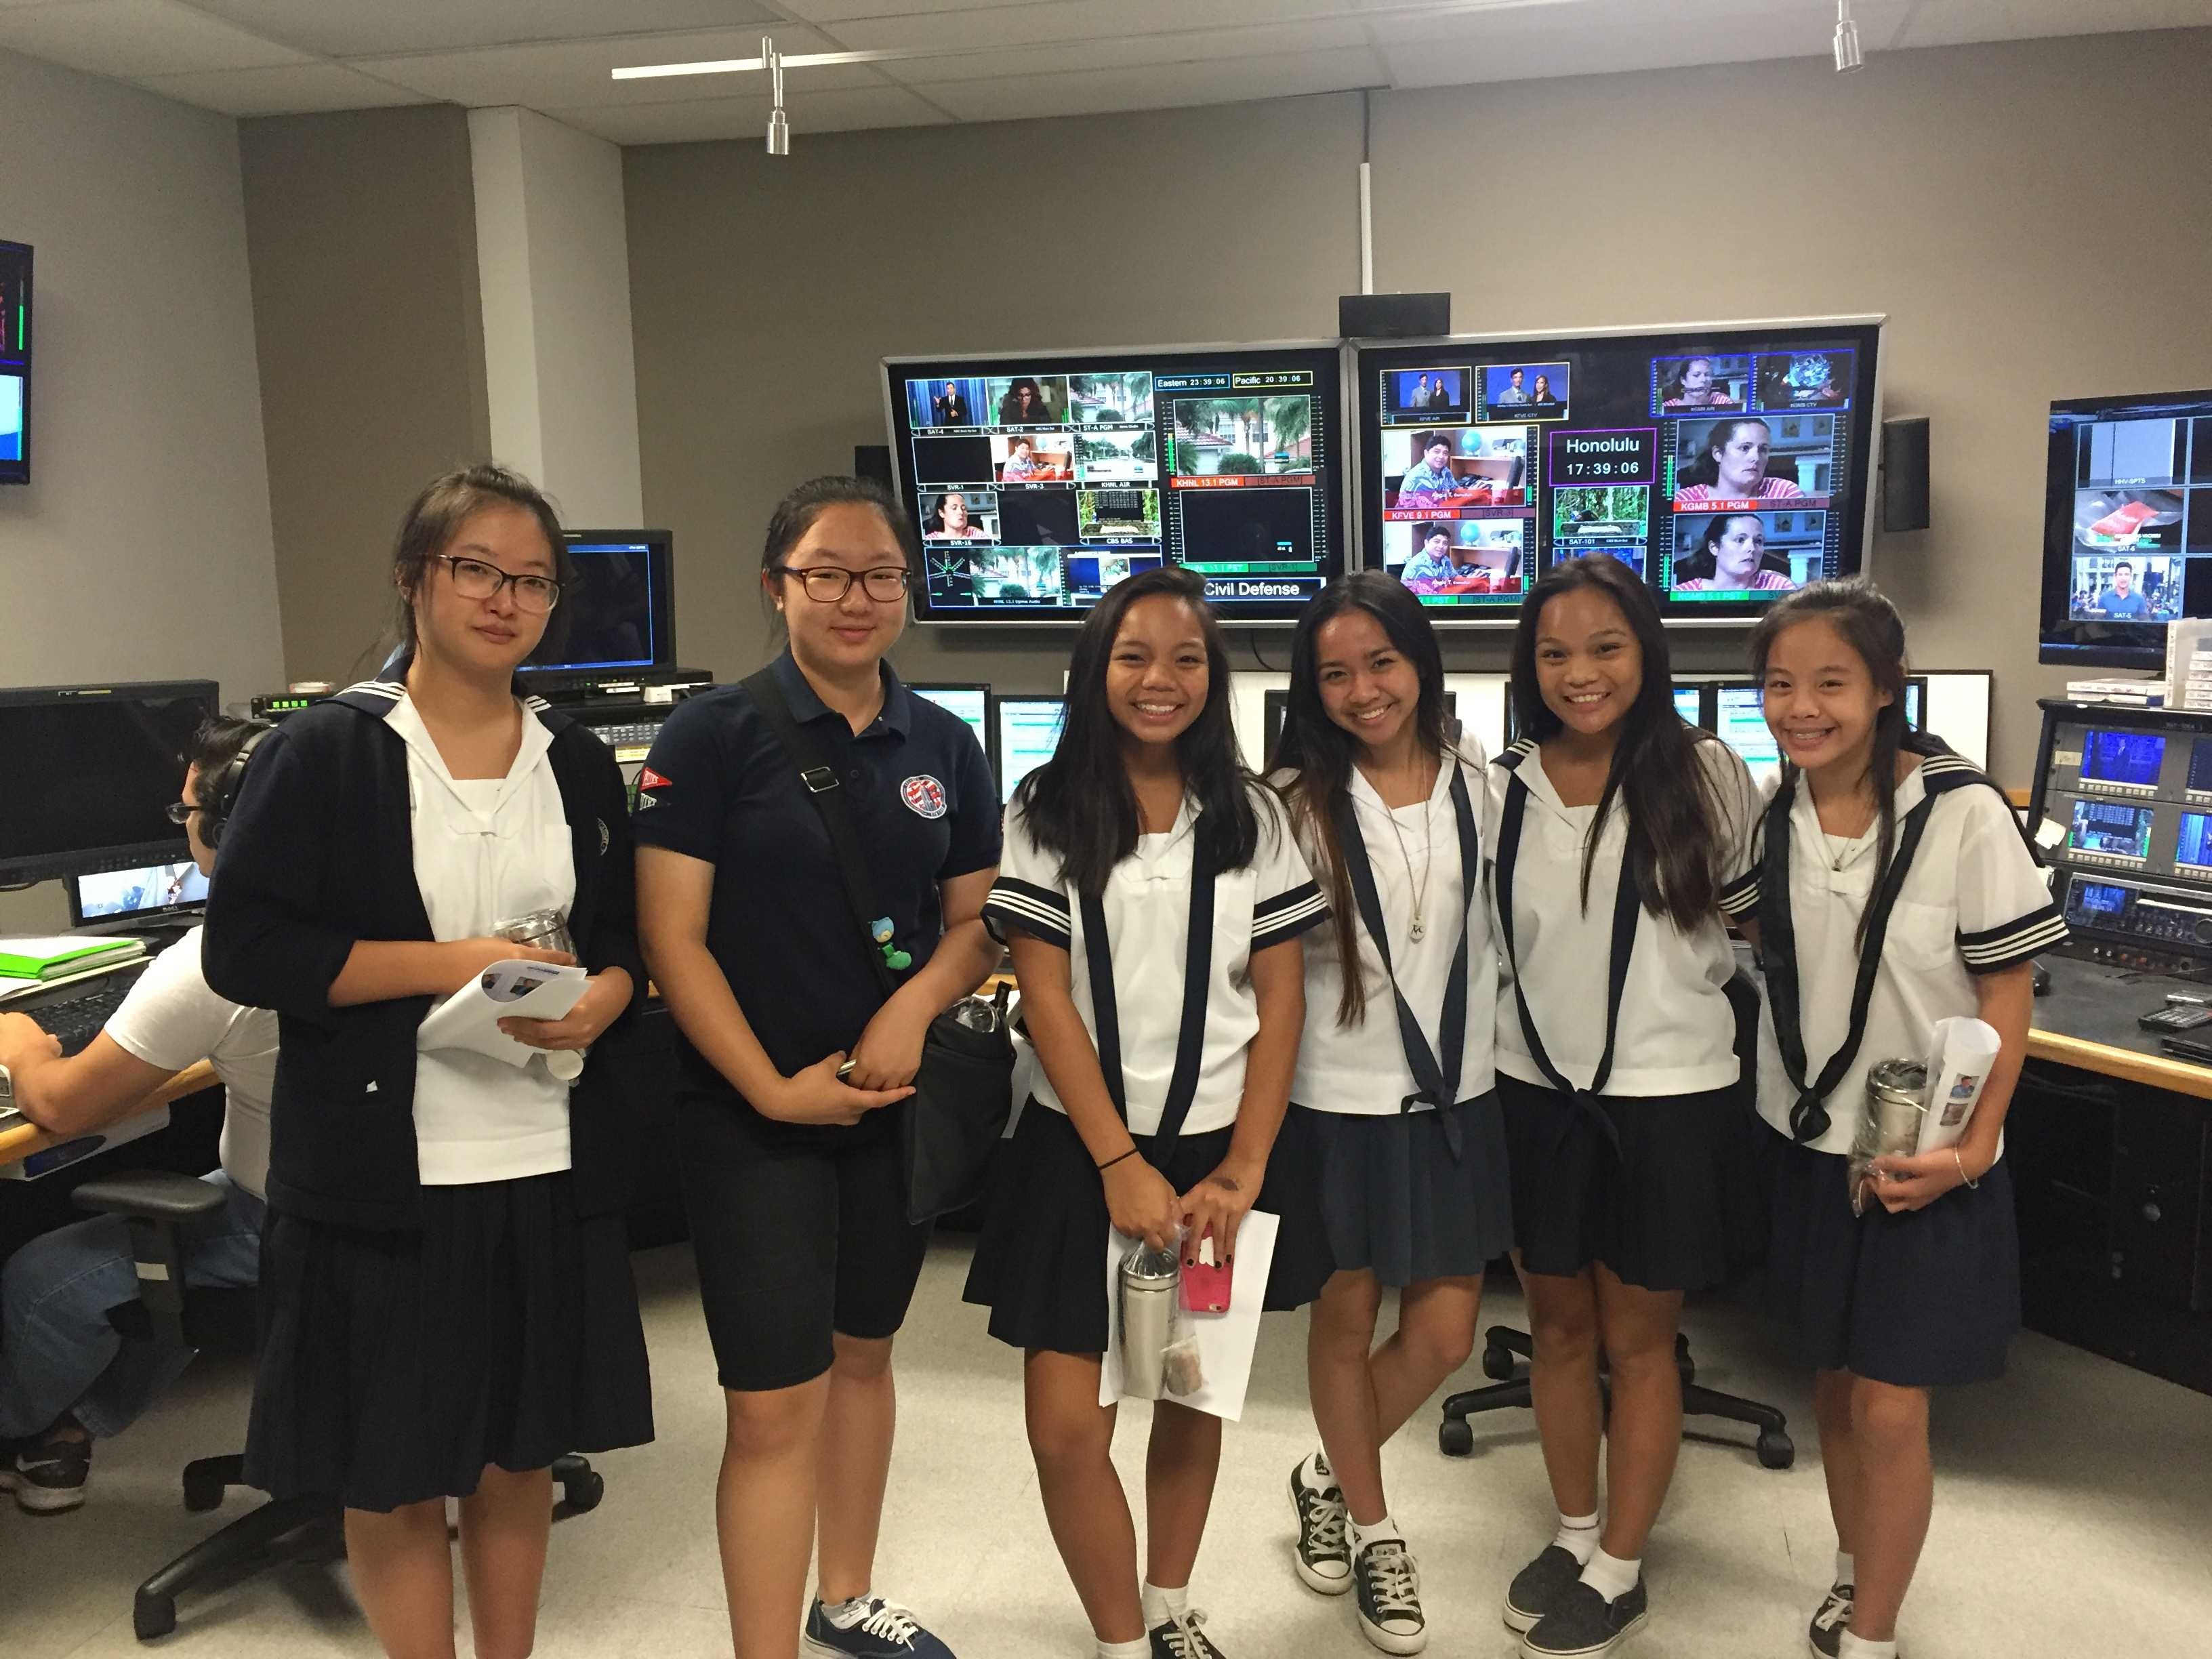 Soroptimist club visited Hawaii News Now for a glimpse at behind-the-scenes broadcasting.